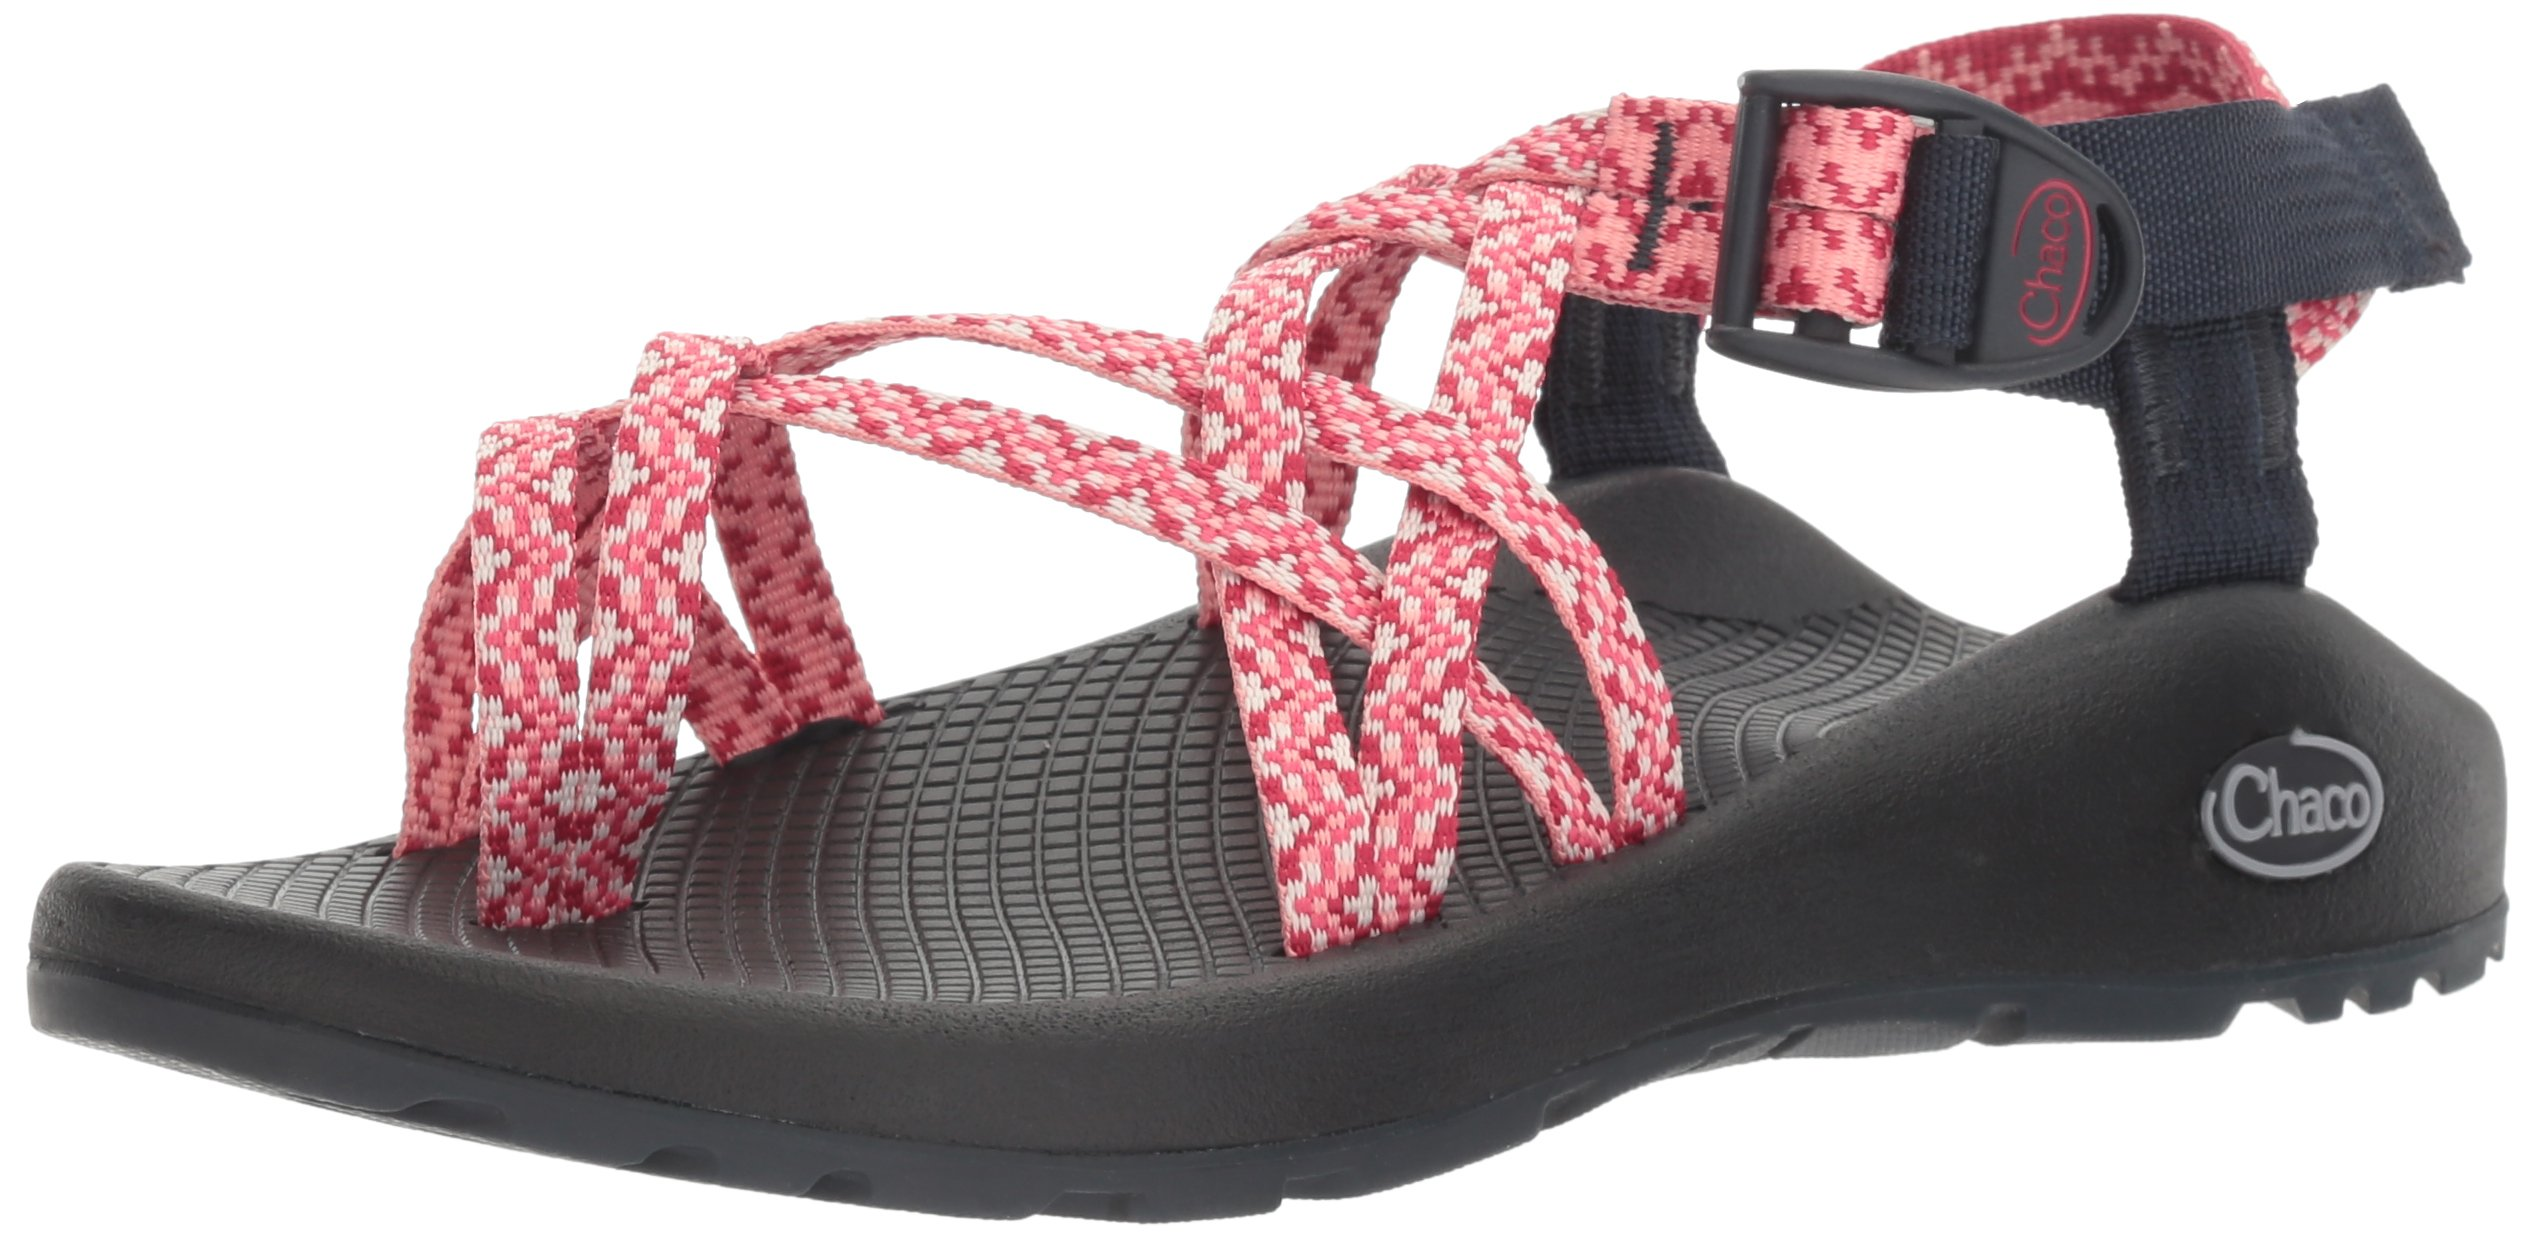 Chaco Women's ZX2 Classic Athletic Sandal, Fusion Rose, 8 M US by Chaco